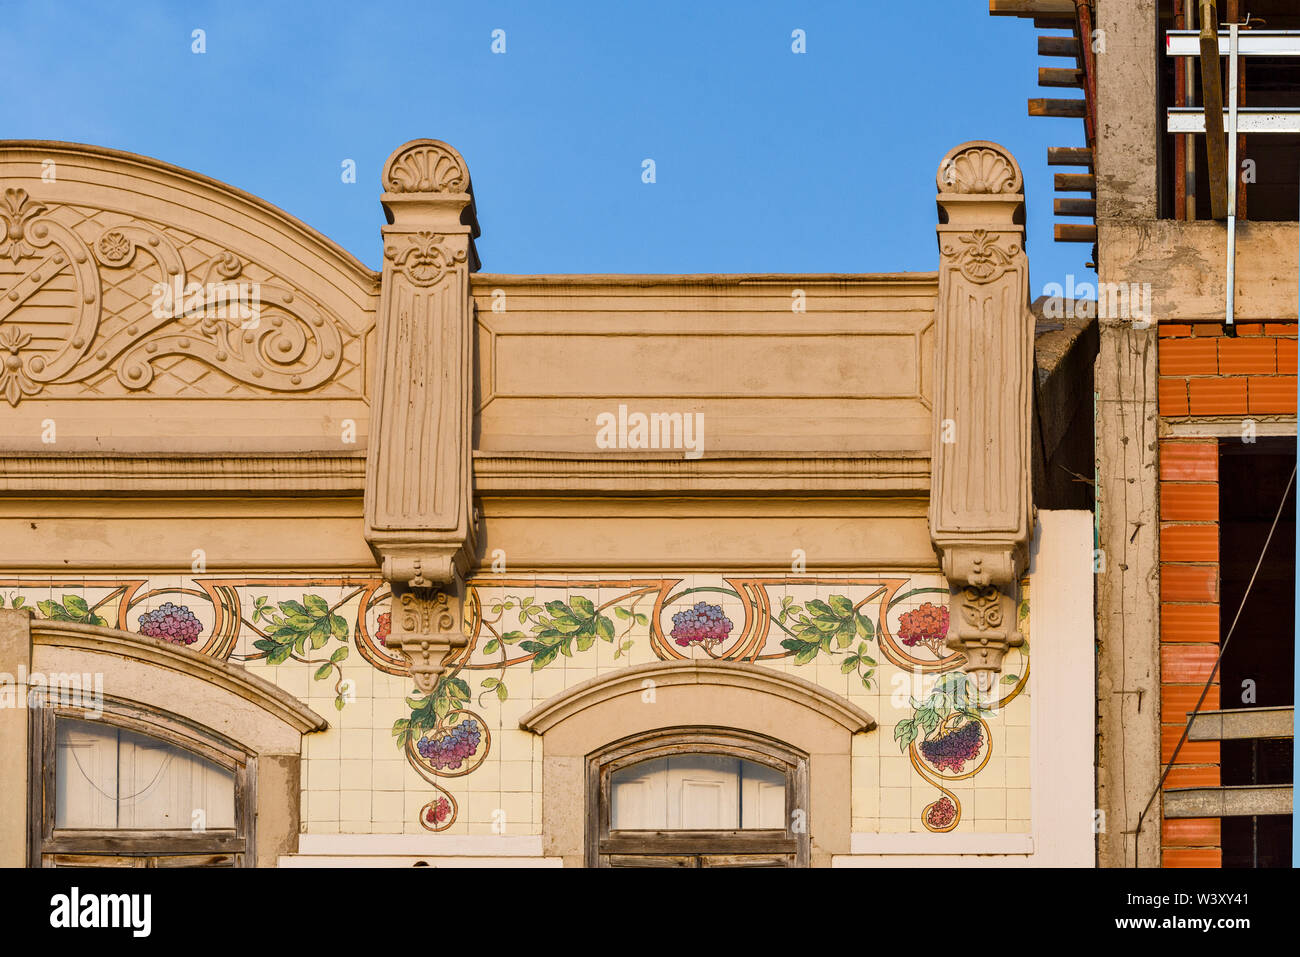 frieze in tiles of azulejos.  fruit and flower pattern on a beautiful patrician building In Olhao, Algarve, Portugal - Stock Image